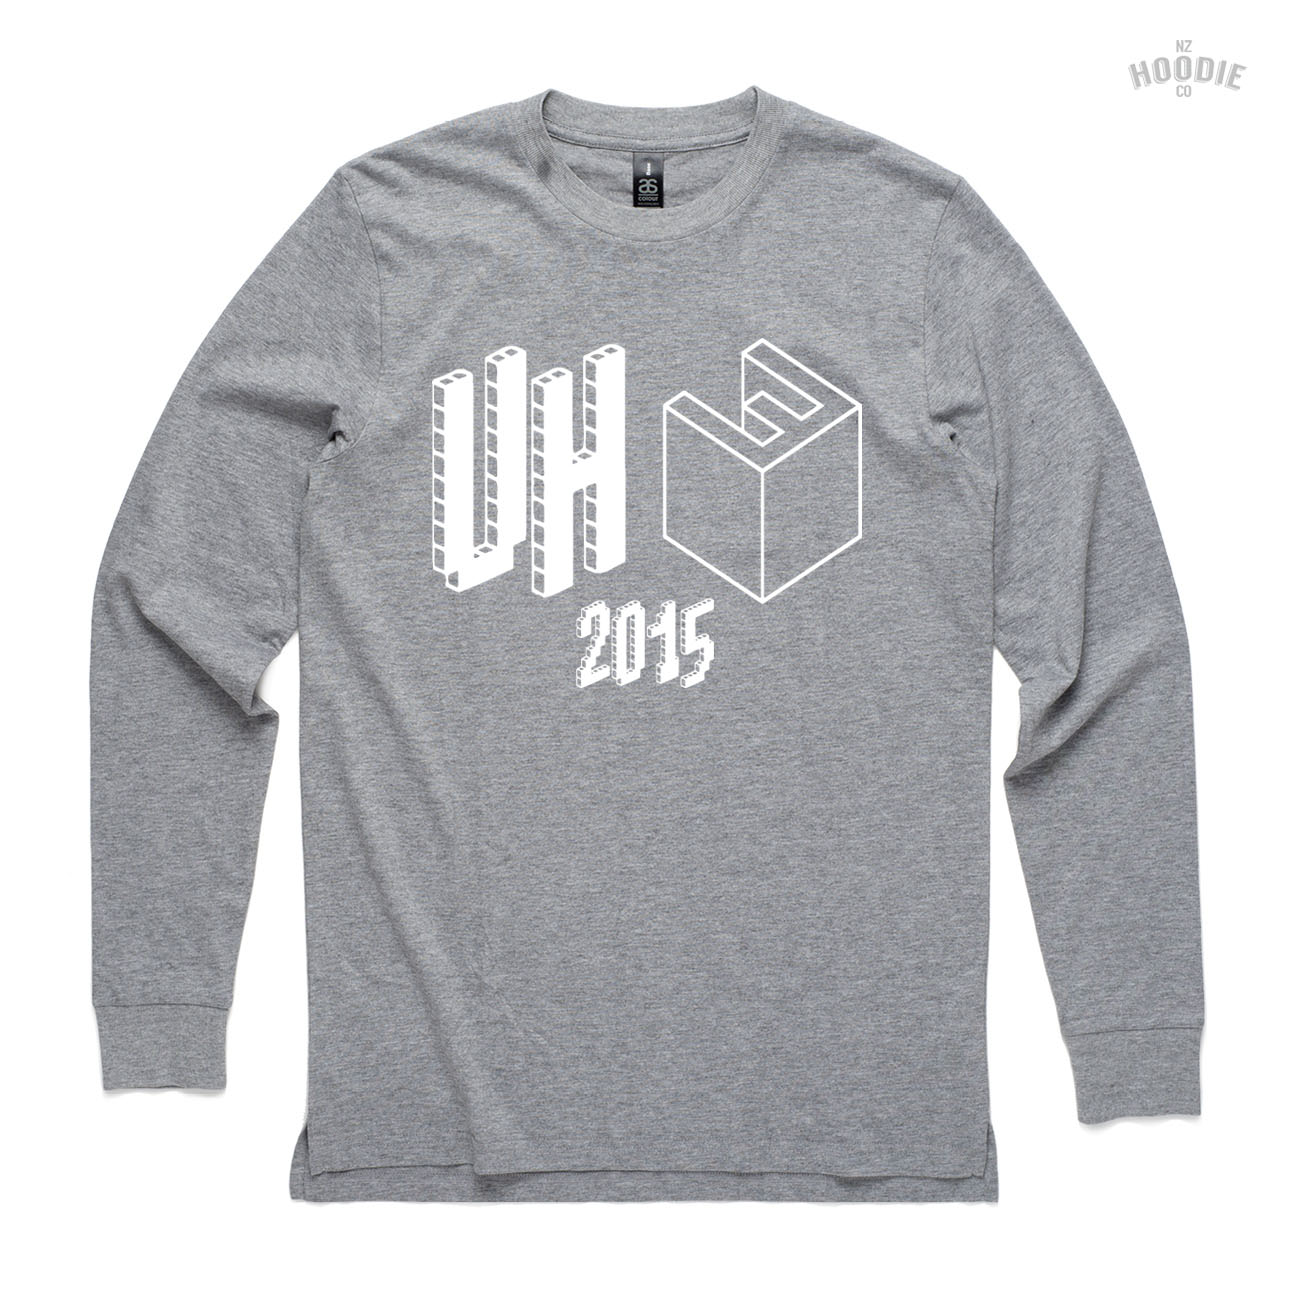 uoa-university-hall-ls-tee-grey.jpg